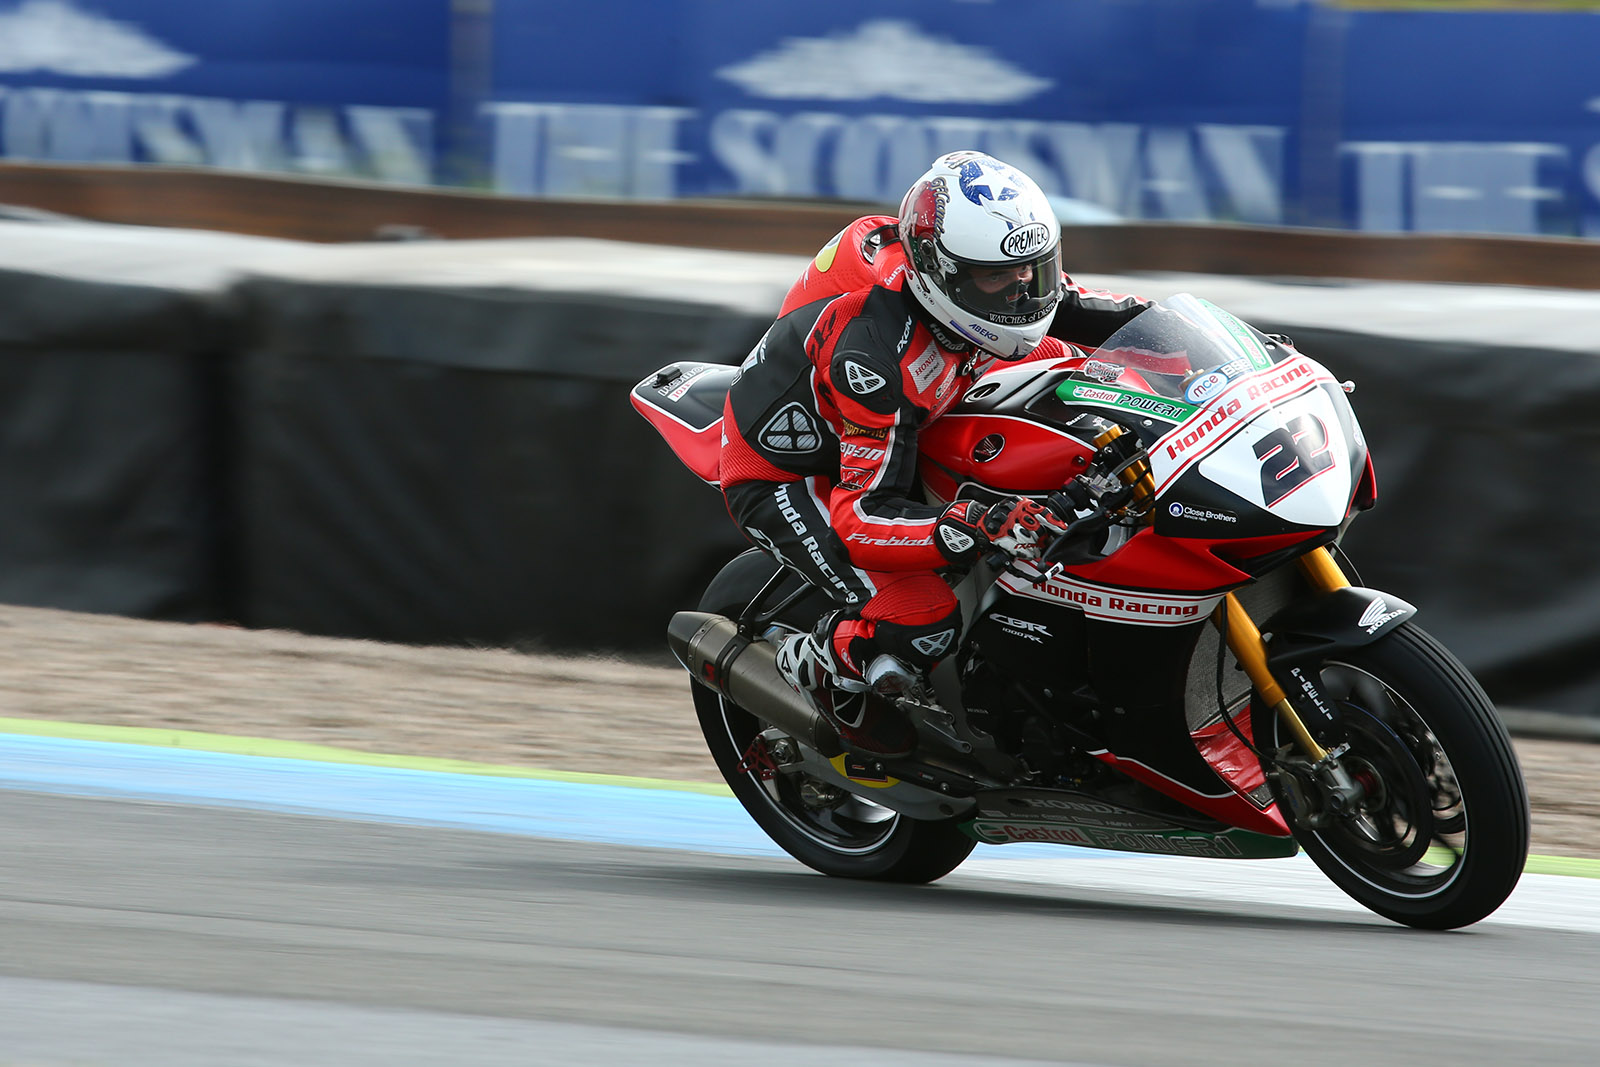 Pitt Stop 2016 Bike Review - Ohalloran BSB (1)